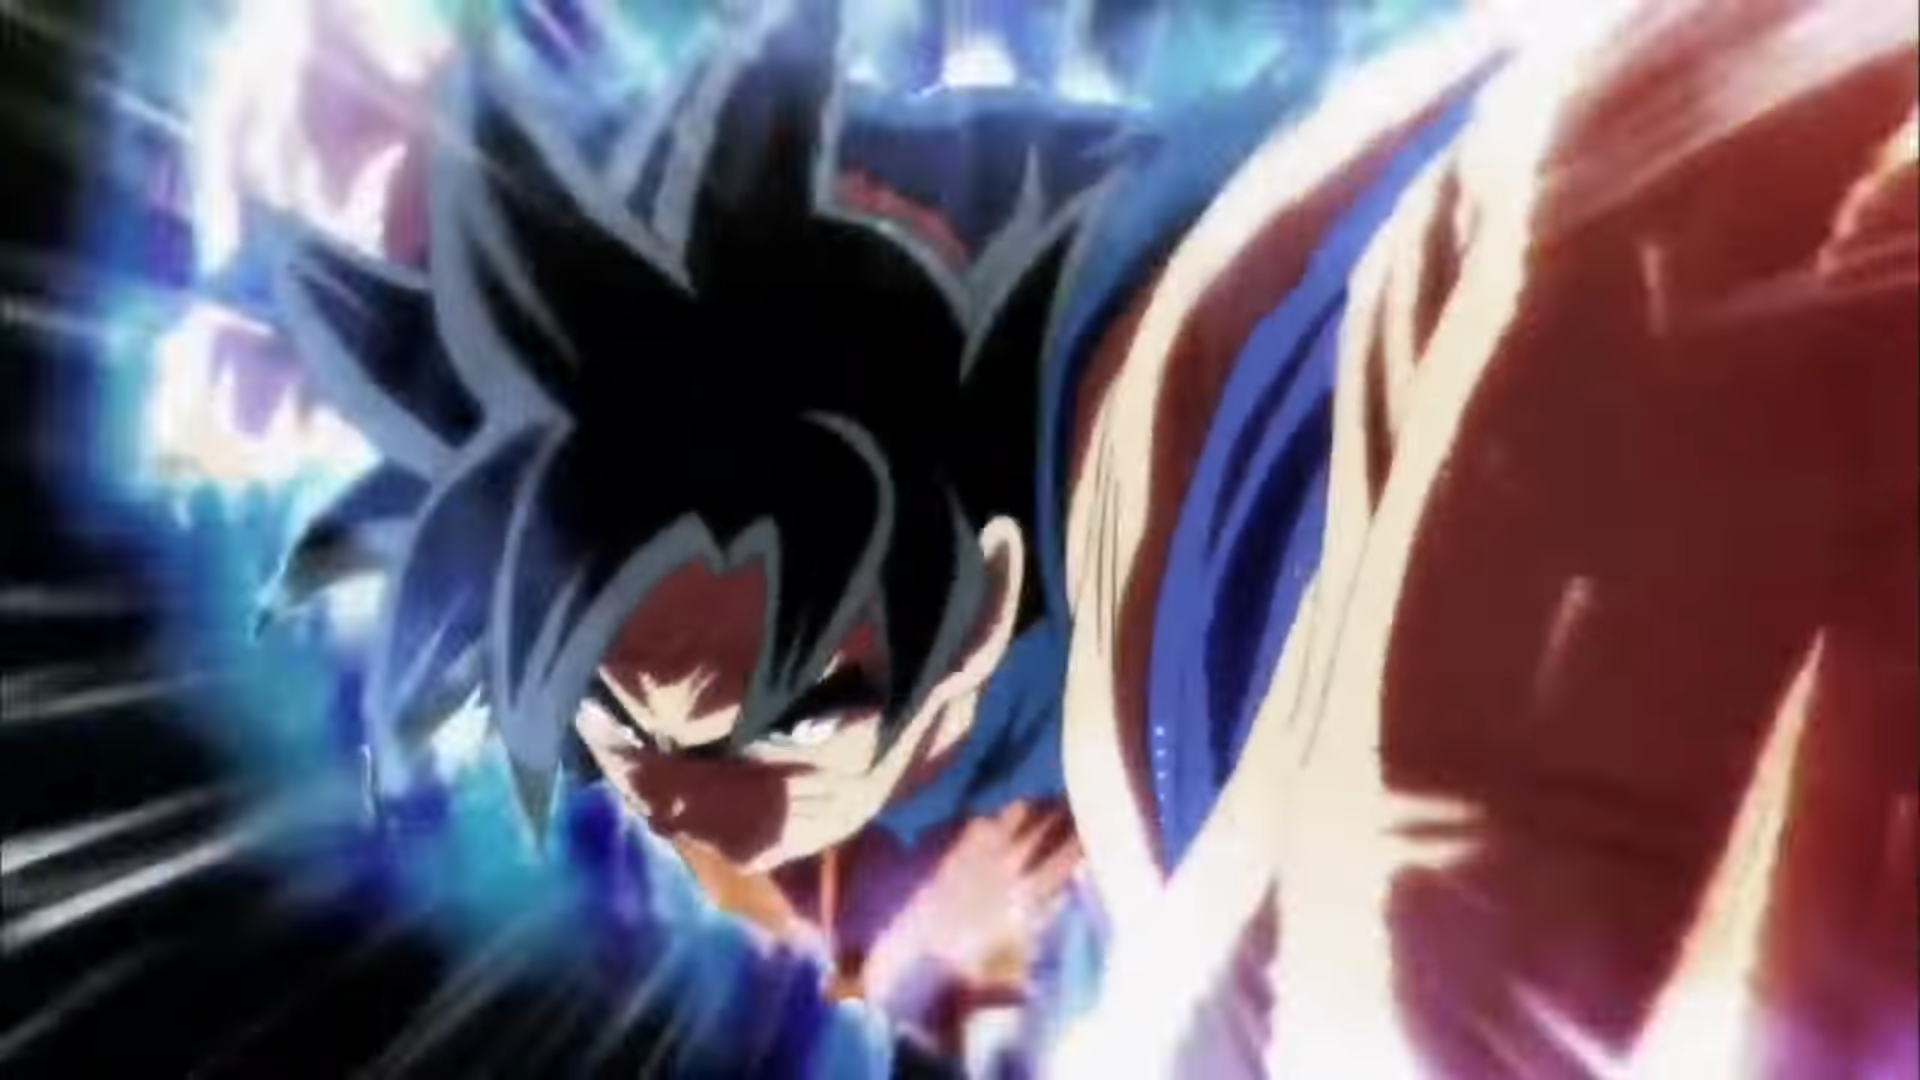 Free Download Goku Ultra Instinct Wallpapers 1920x1080 For Your